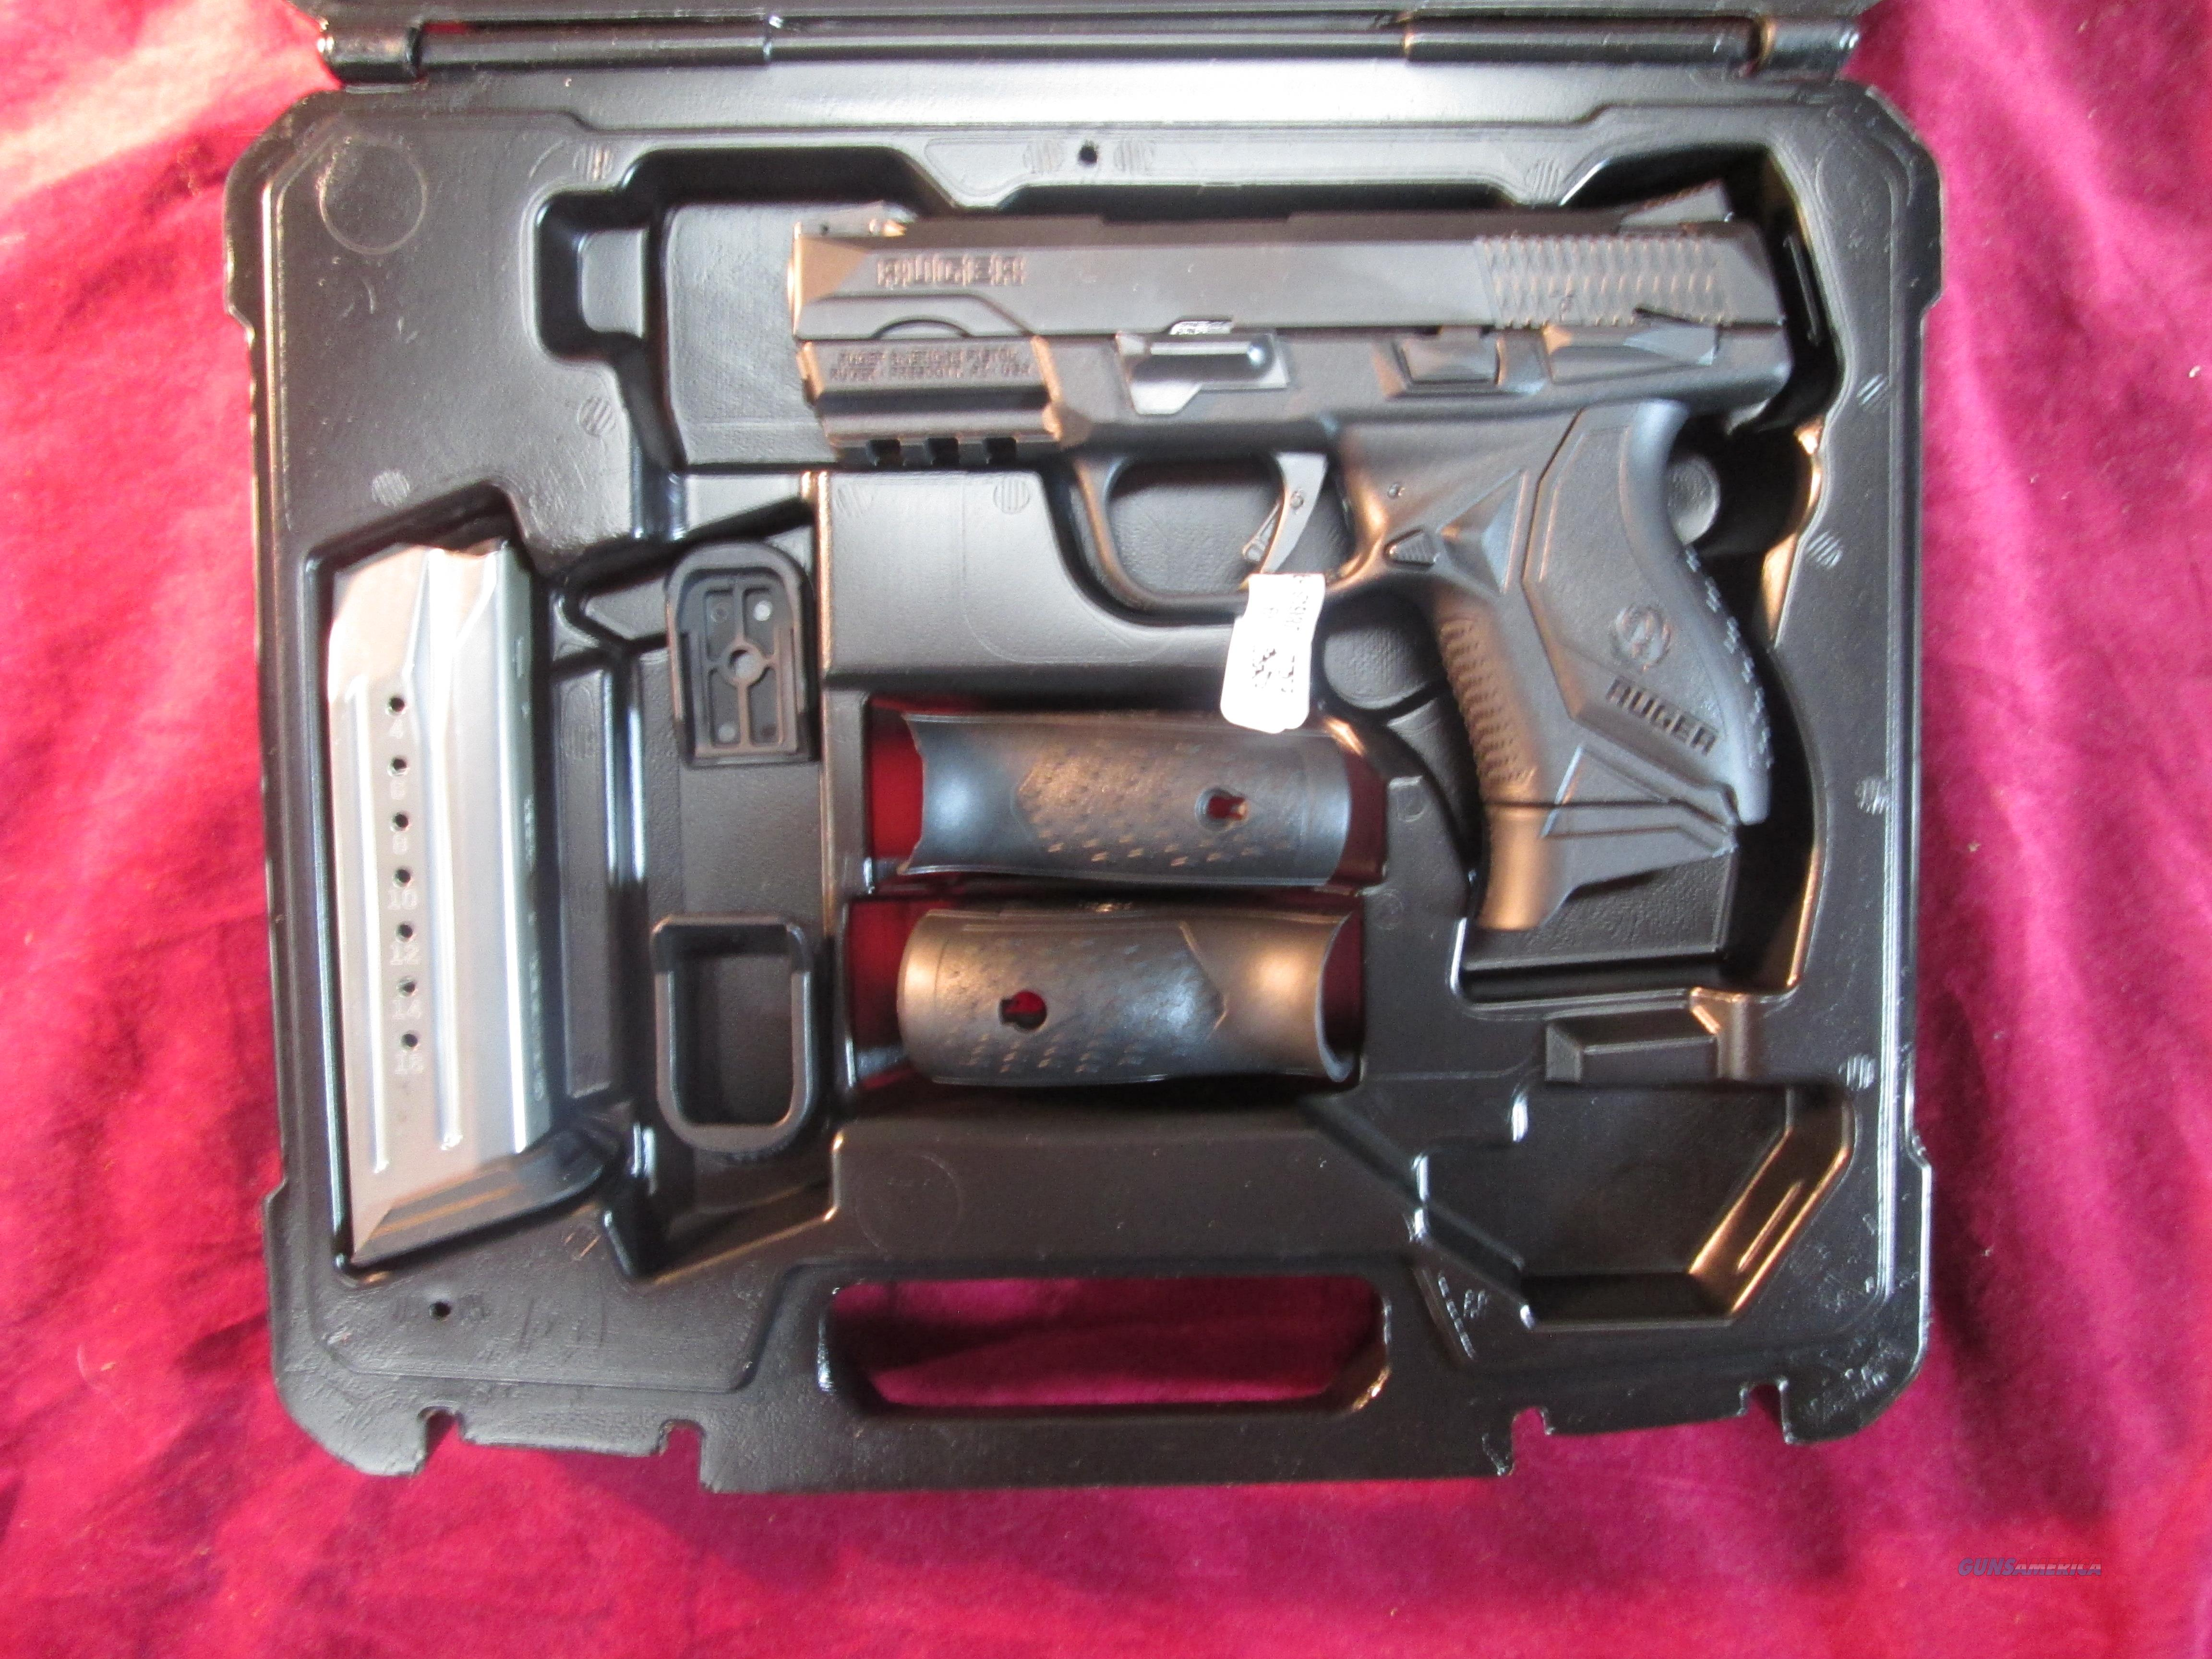 RUGER AMERICAN COMPACT PISTOL 9MM BLACK NITRIDE W/ MANUAL SAFETY NEW (08639)  Guns > Pistols > Ruger Semi-Auto Pistols > American Pistol